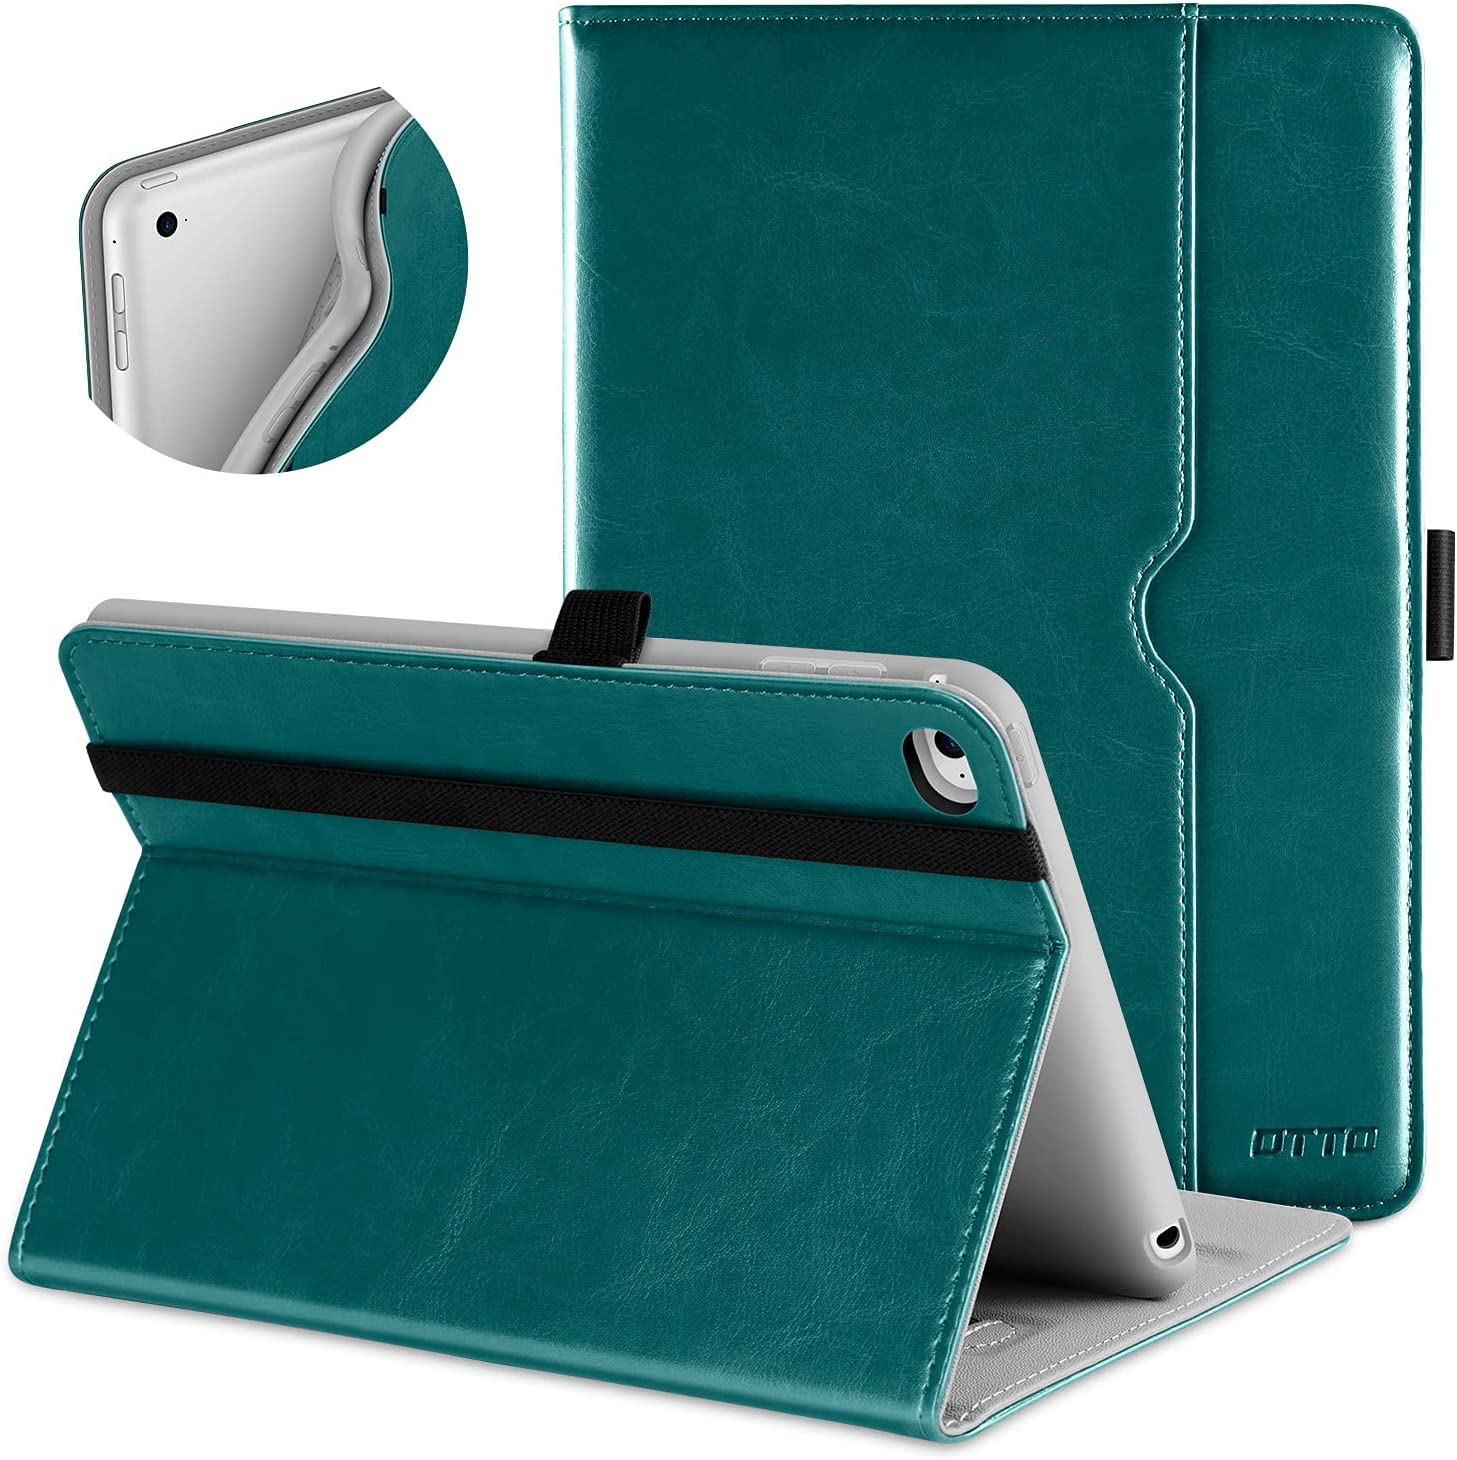 DTTO iPad Mini 4 Case, Premium Leather Folio Stand Cover Case with Multi-Angle Viewing and Auto Wake-Sleep Function, Front Pocket for Apple iPad Mini 4 - Green